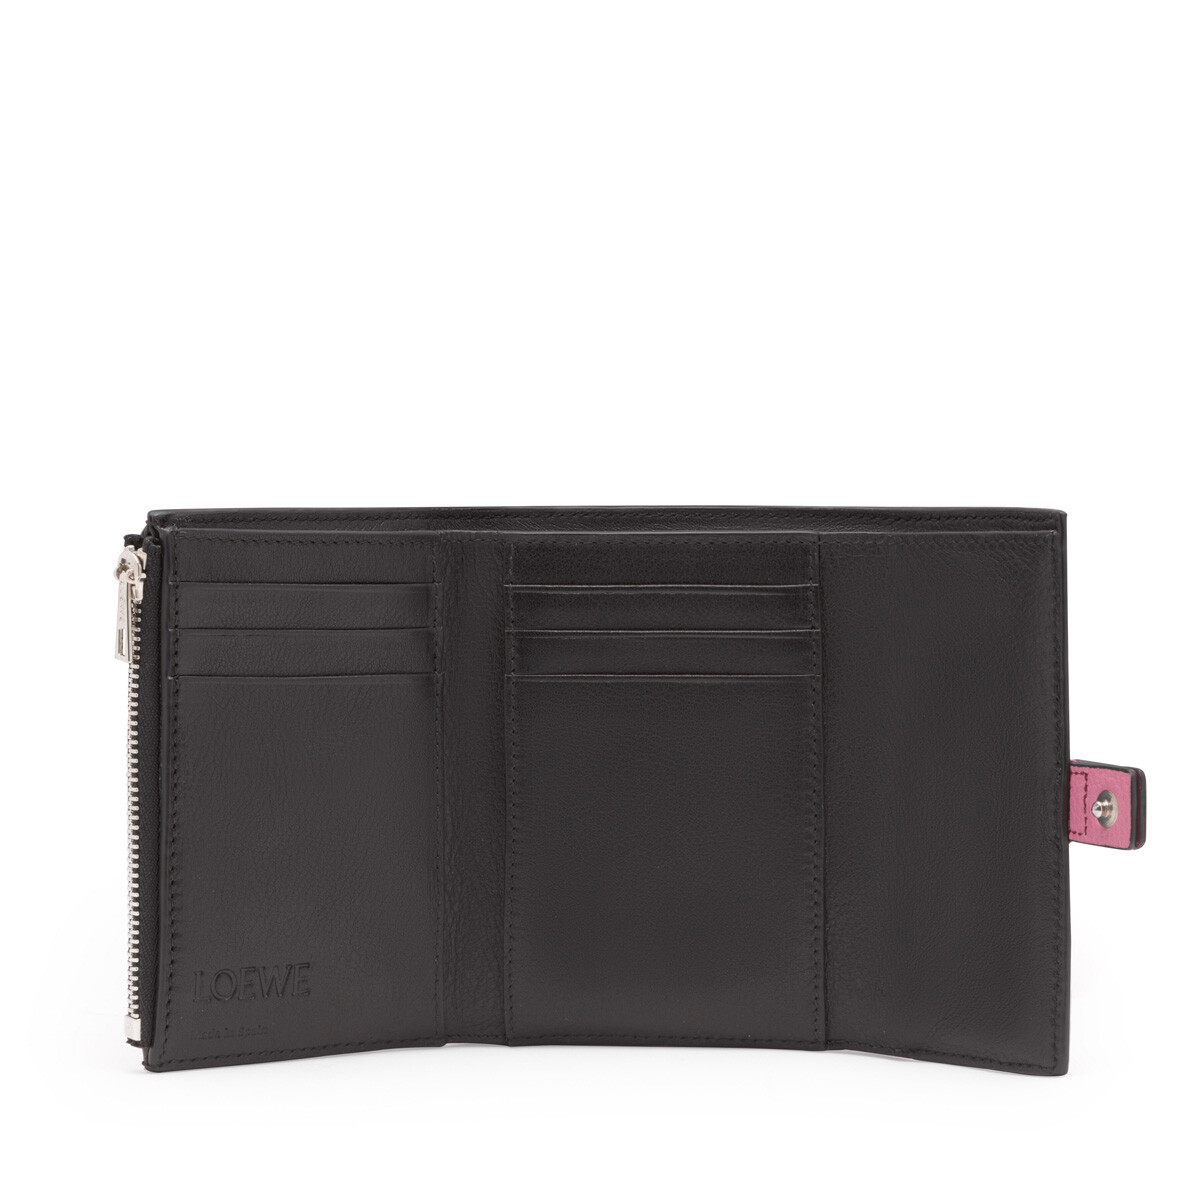 LOEWE Small Vertical Wallet Wild Rose/Raspberry front